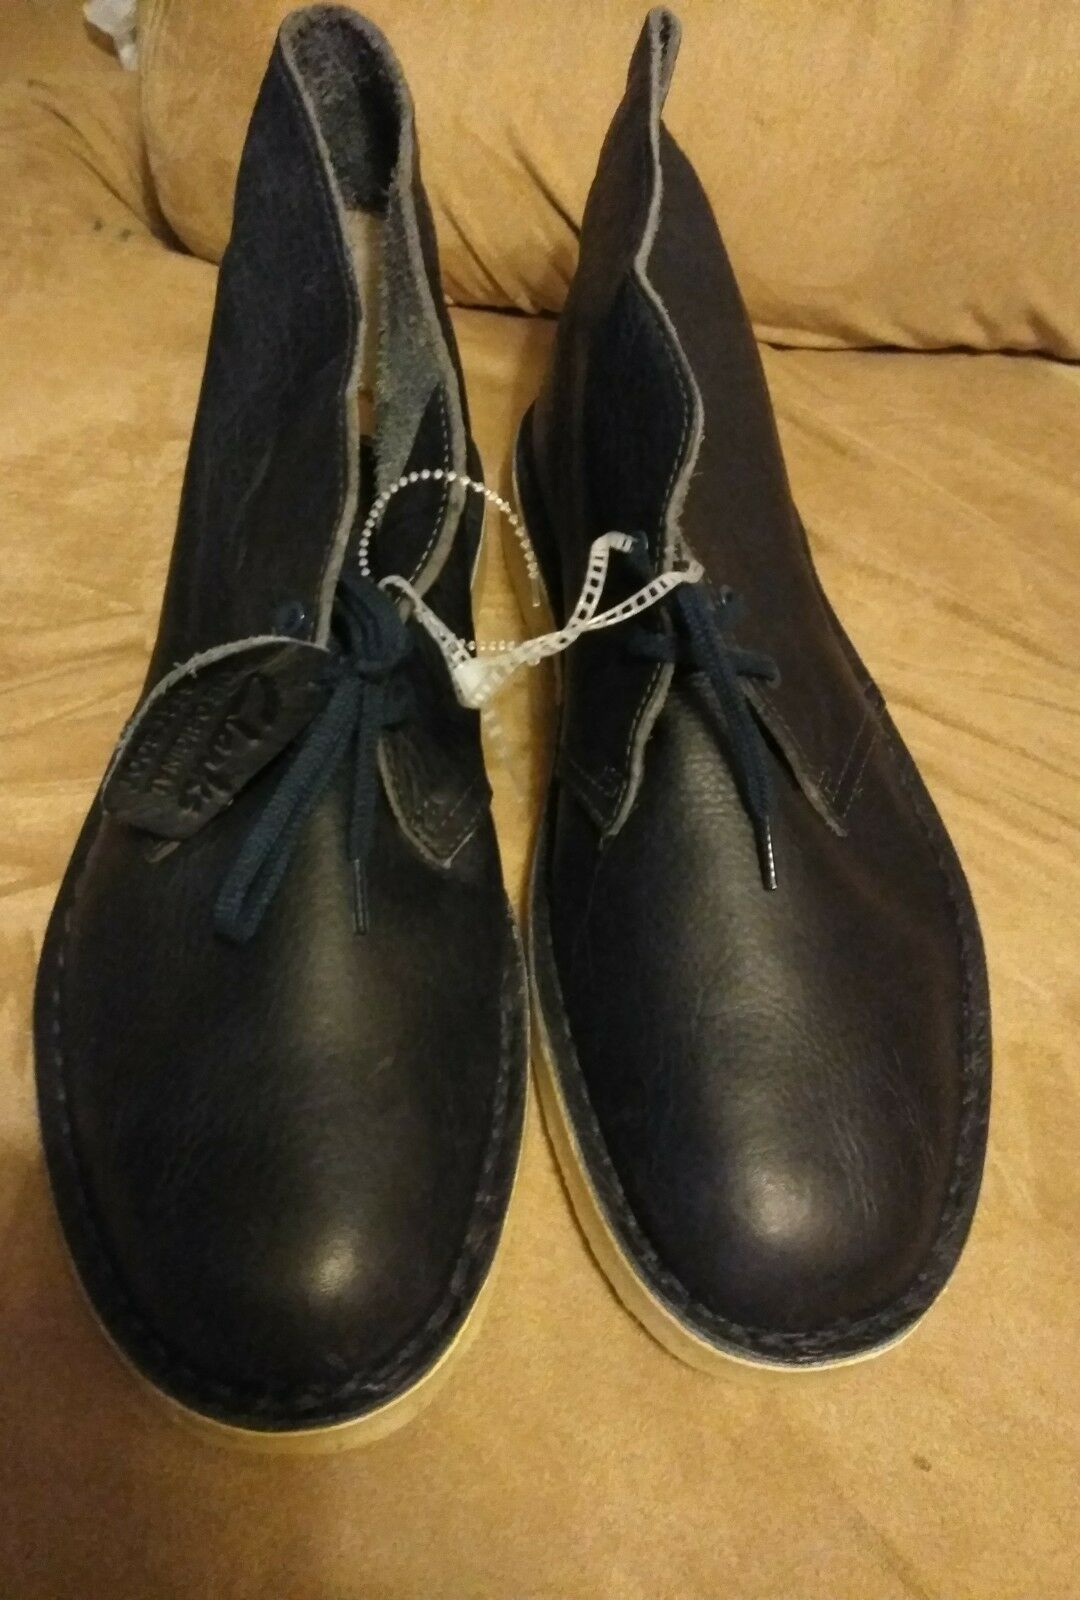 clarks leather desert chukka boots navy leather clarks mens size 12 classic 37c05c